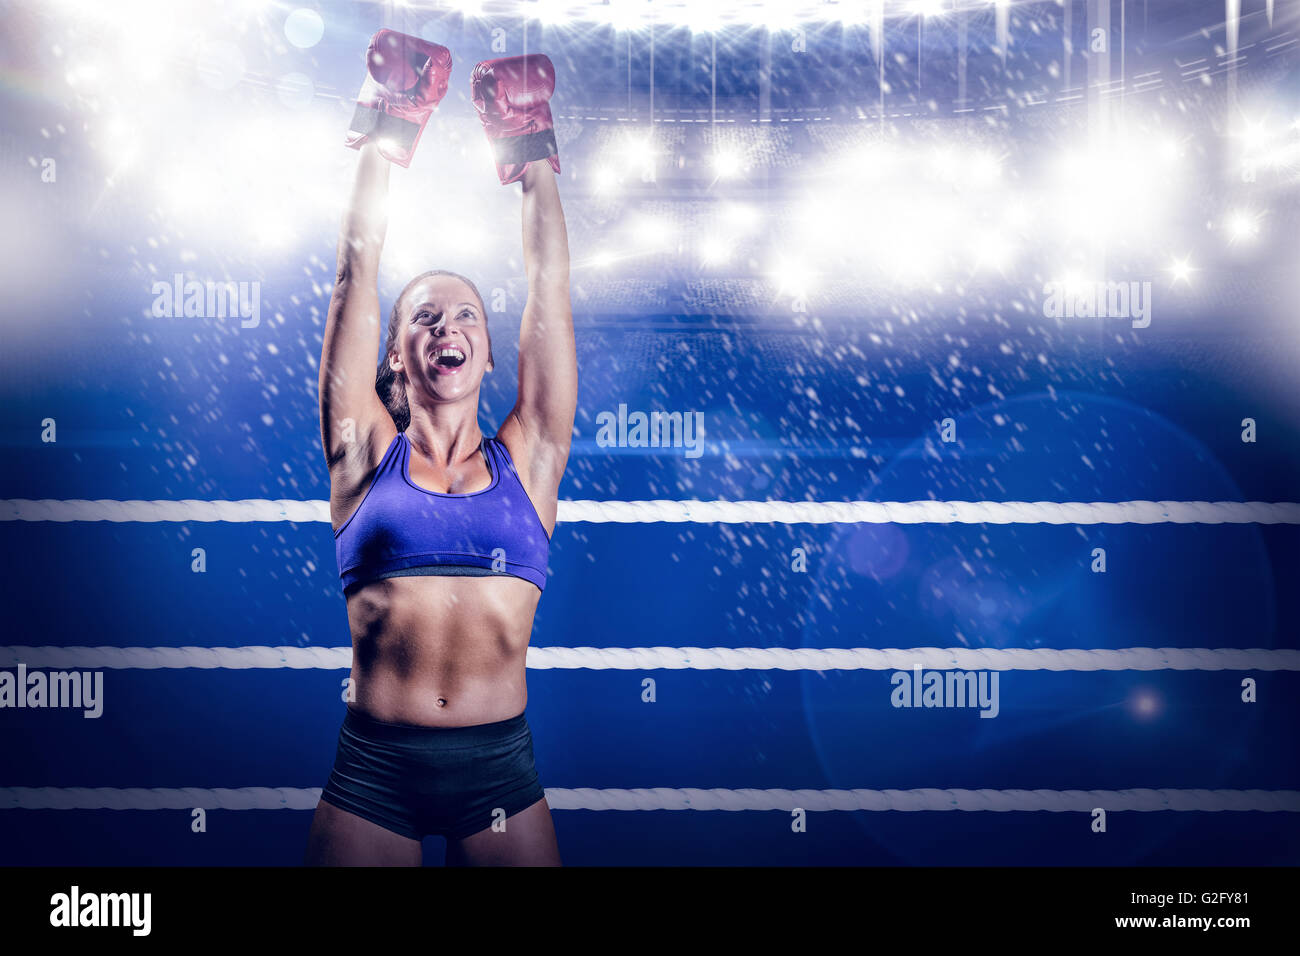 Composite image of winning fighter with arms raised - Stock Image